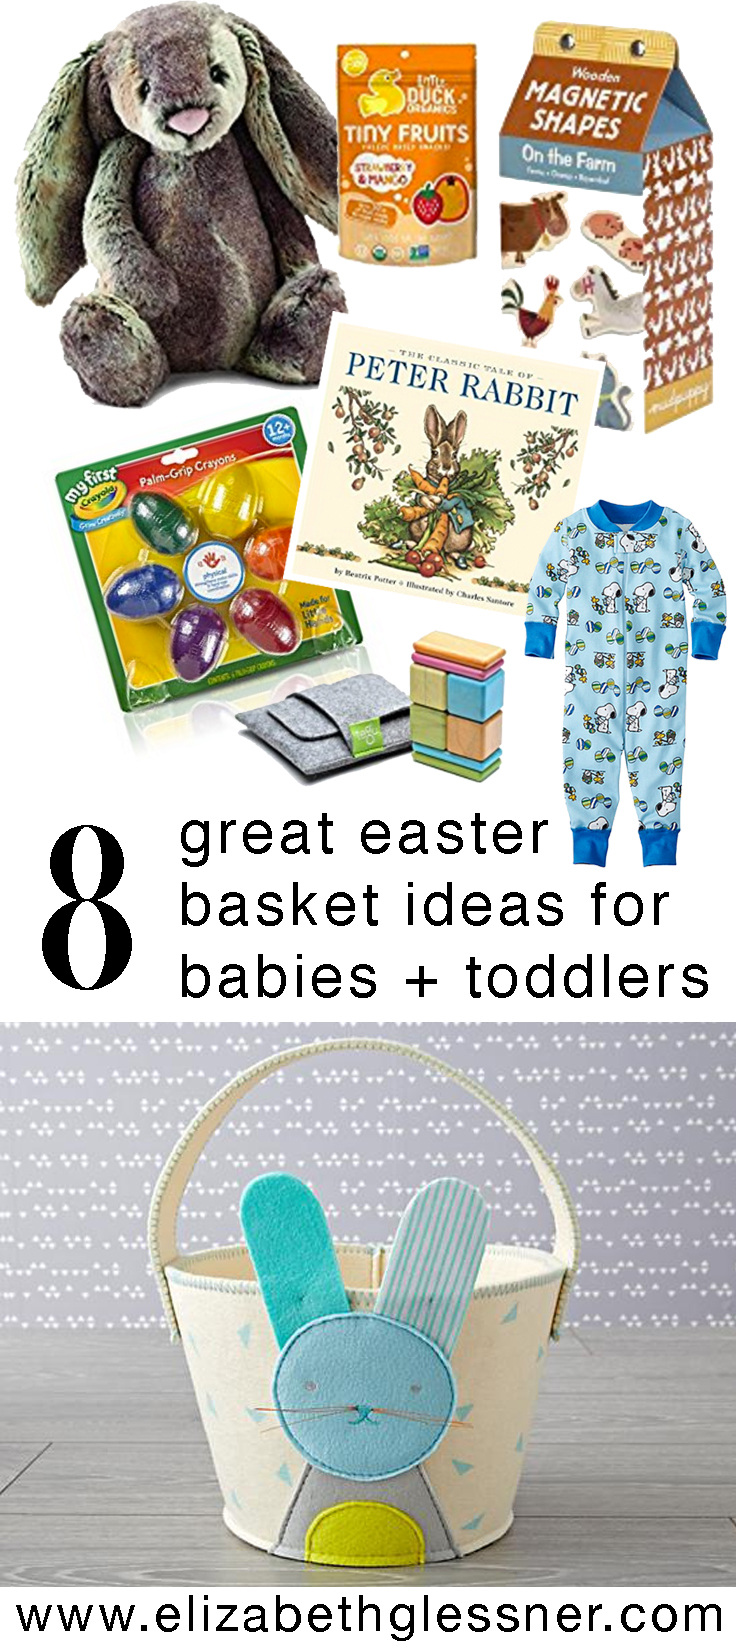 8 great easter basket ideas for babies and toddlers elizabeth 8 great easter basket ideas for babies and toddlers elizabeth glessner embracing the good negle Choice Image